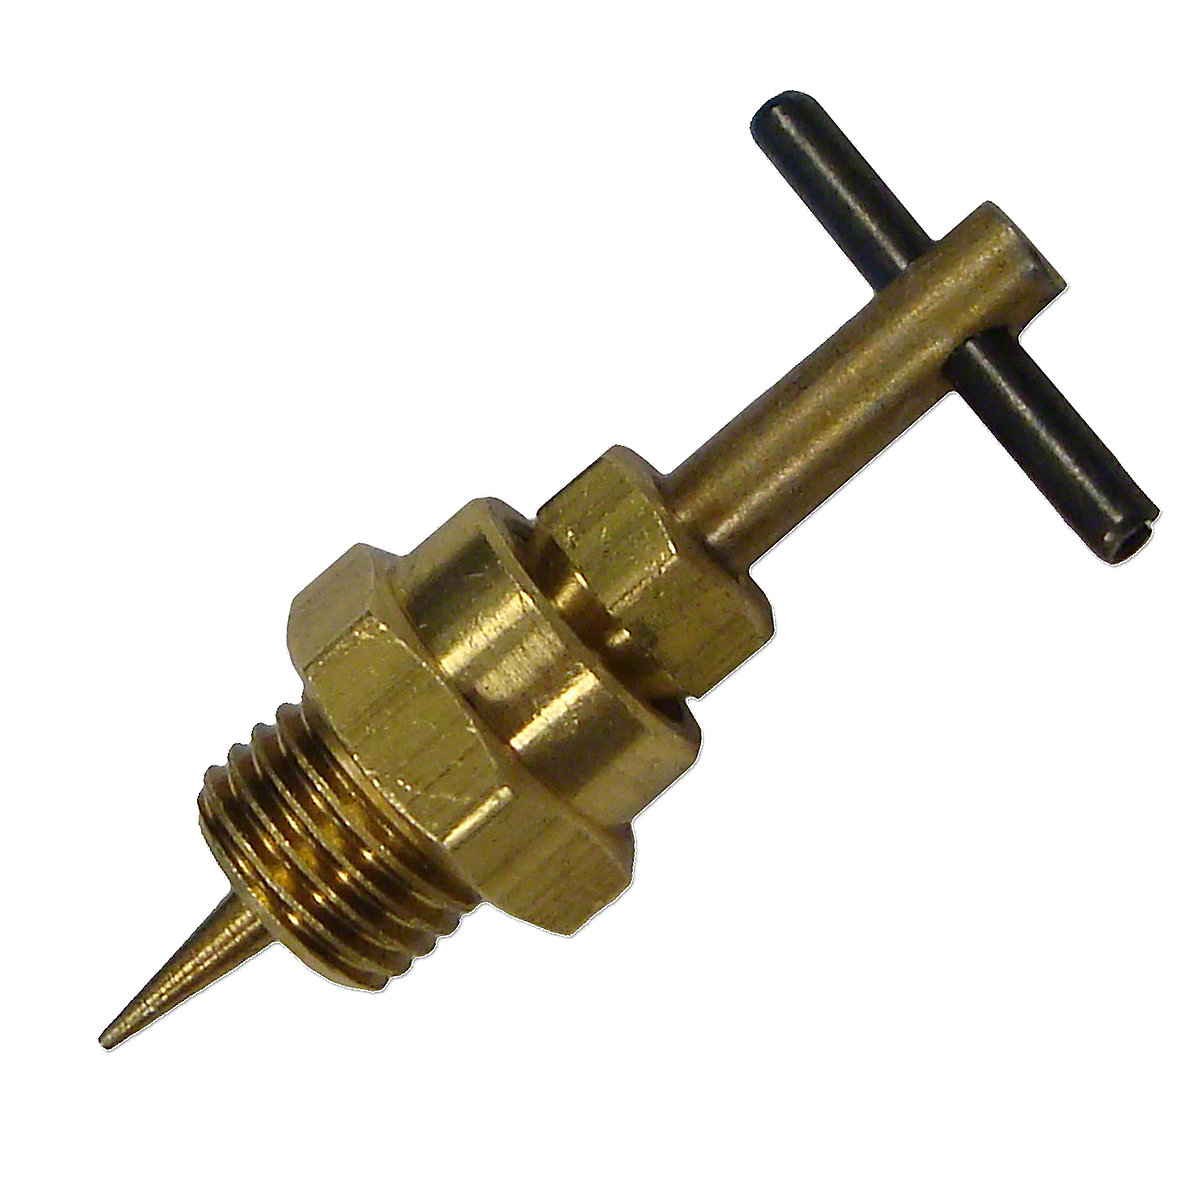 ABC564 Zenith Main Jet Adjusting Needle Assembly